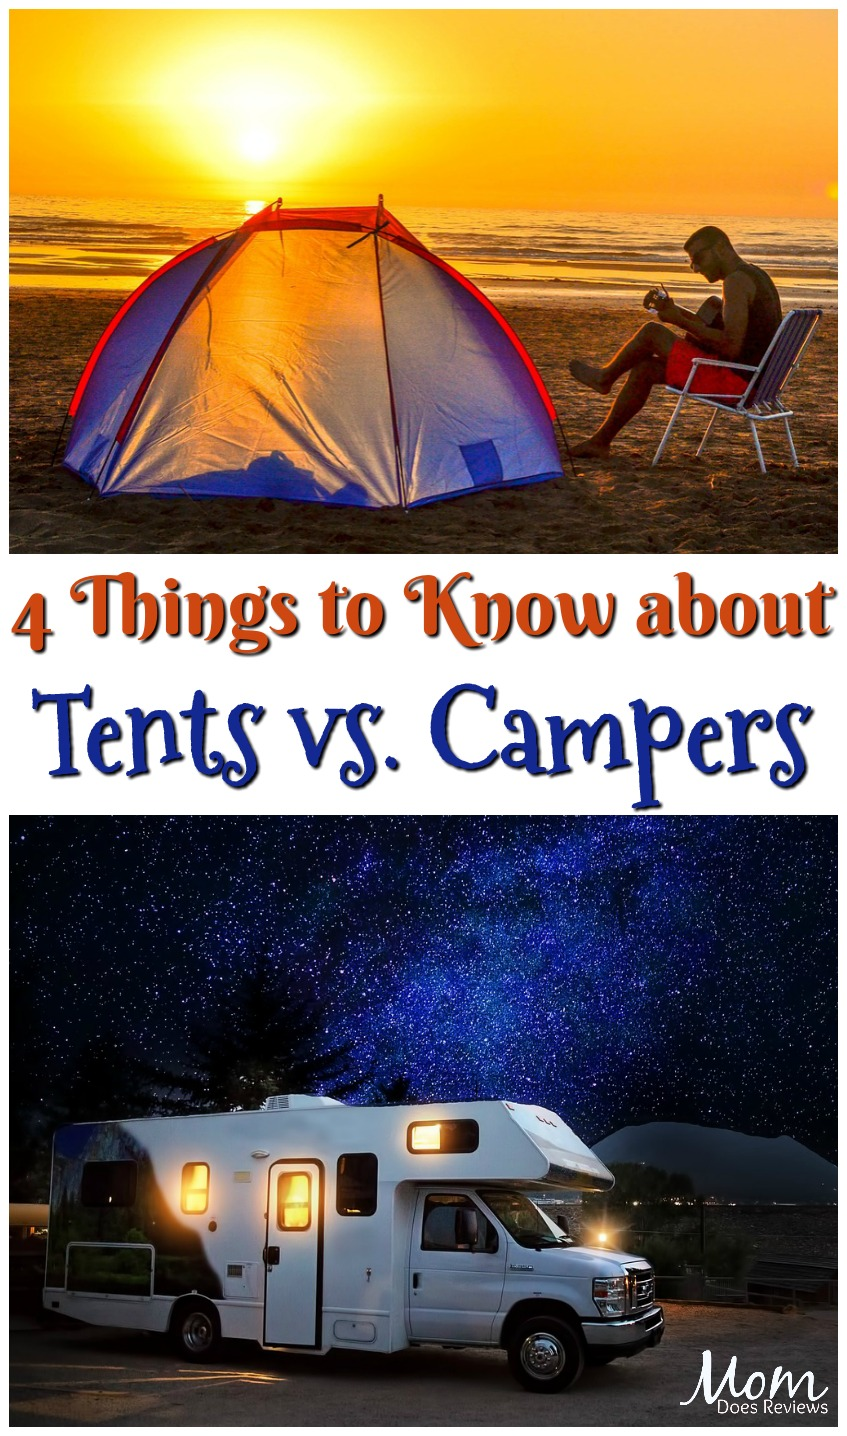 4 Things to Know about Outdoor-Stay Methods Tents vs Campers #travel #camping #tents #campers